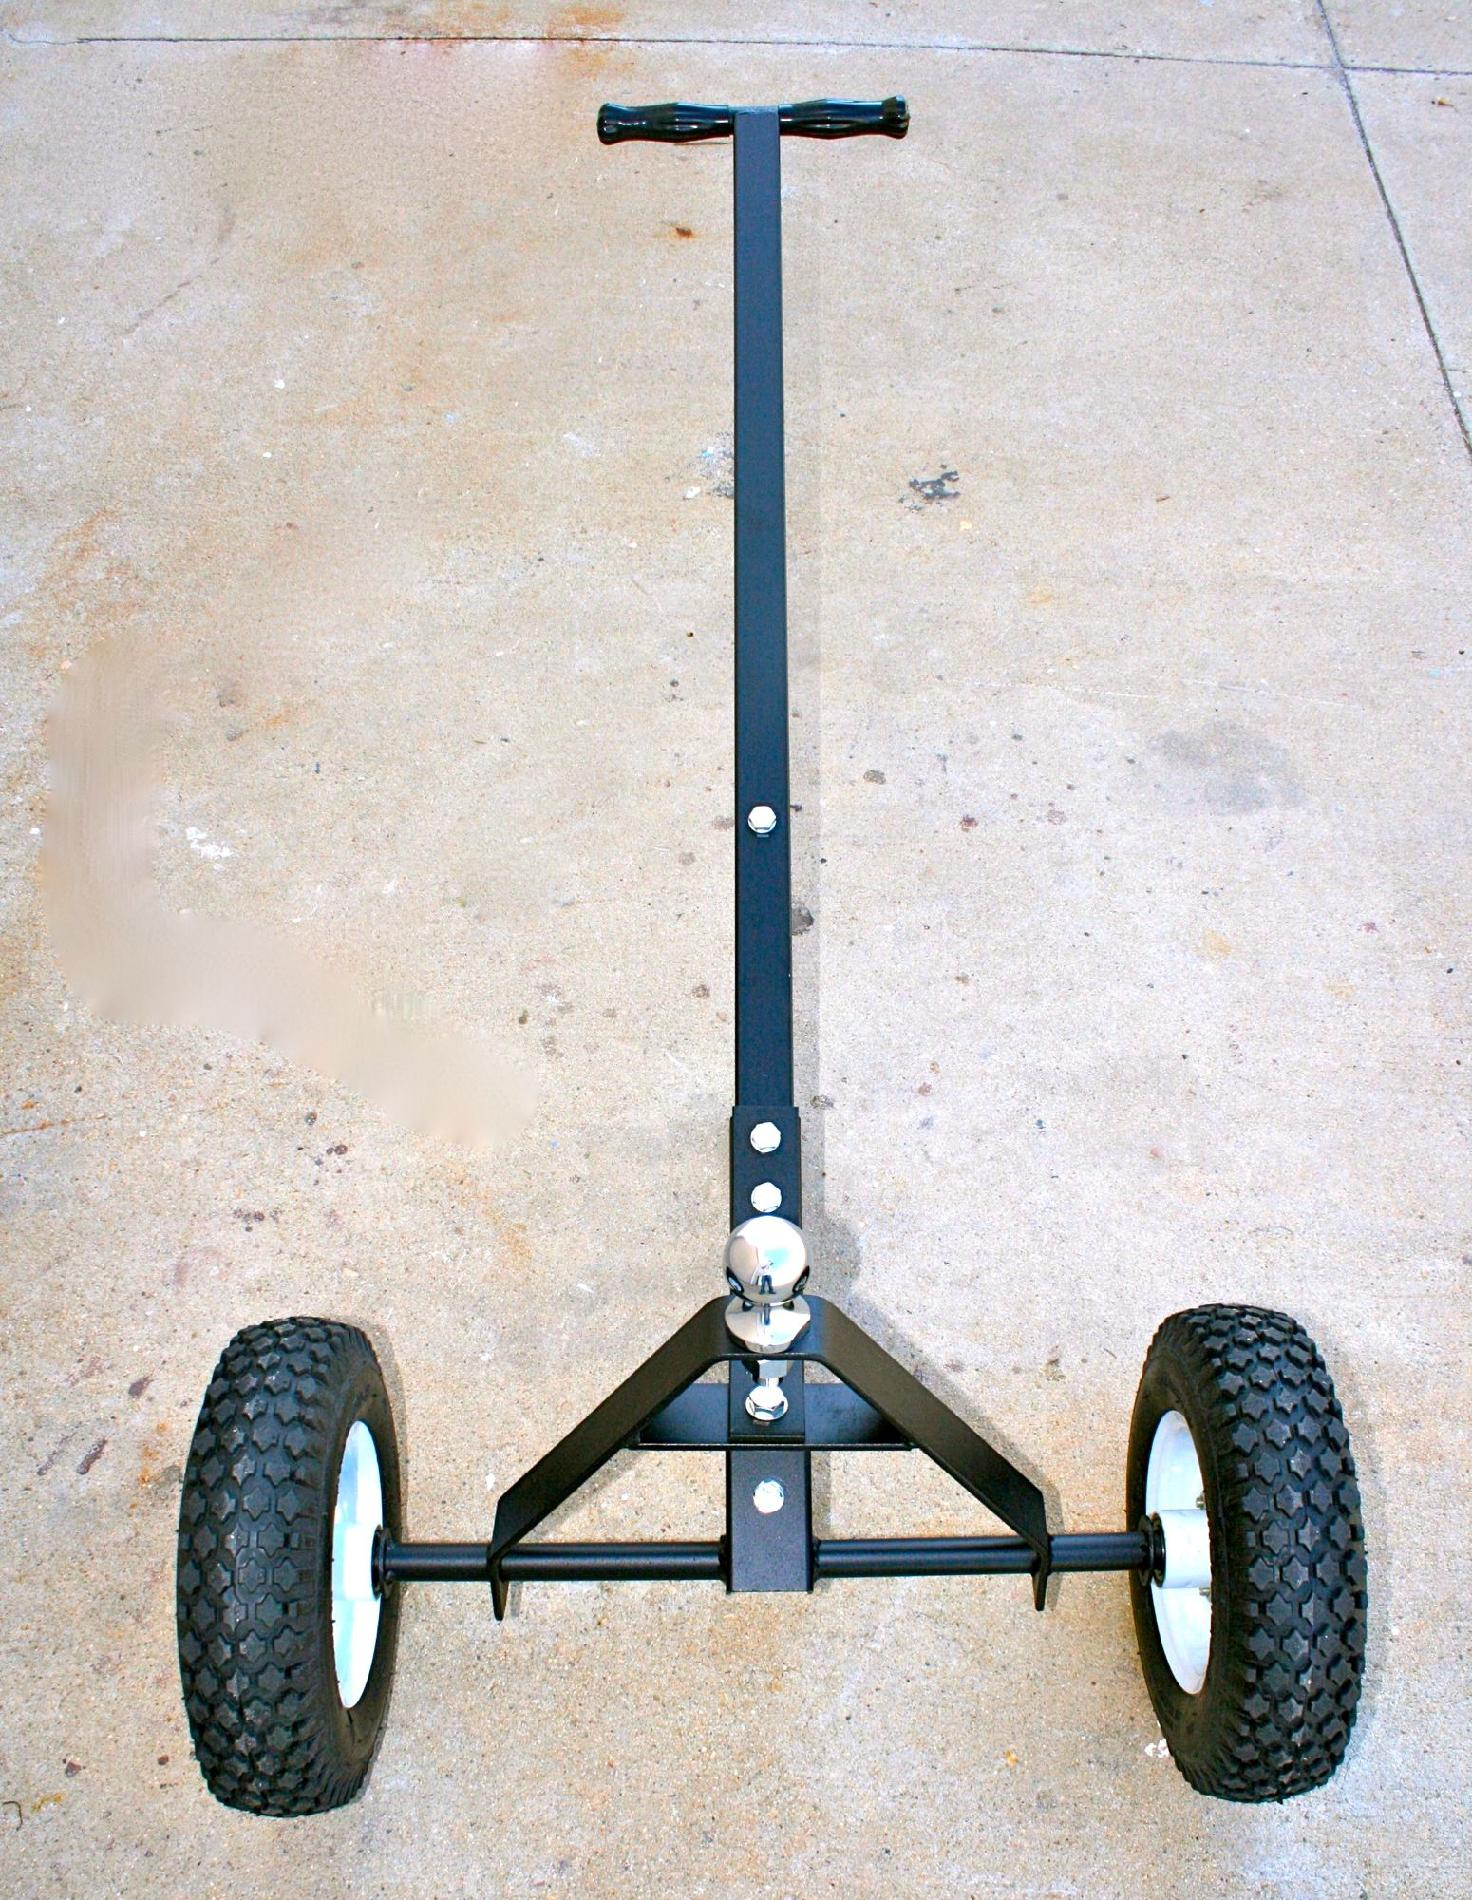 MAXXTOW 70225, Trailer Dolly 600lb Capacity